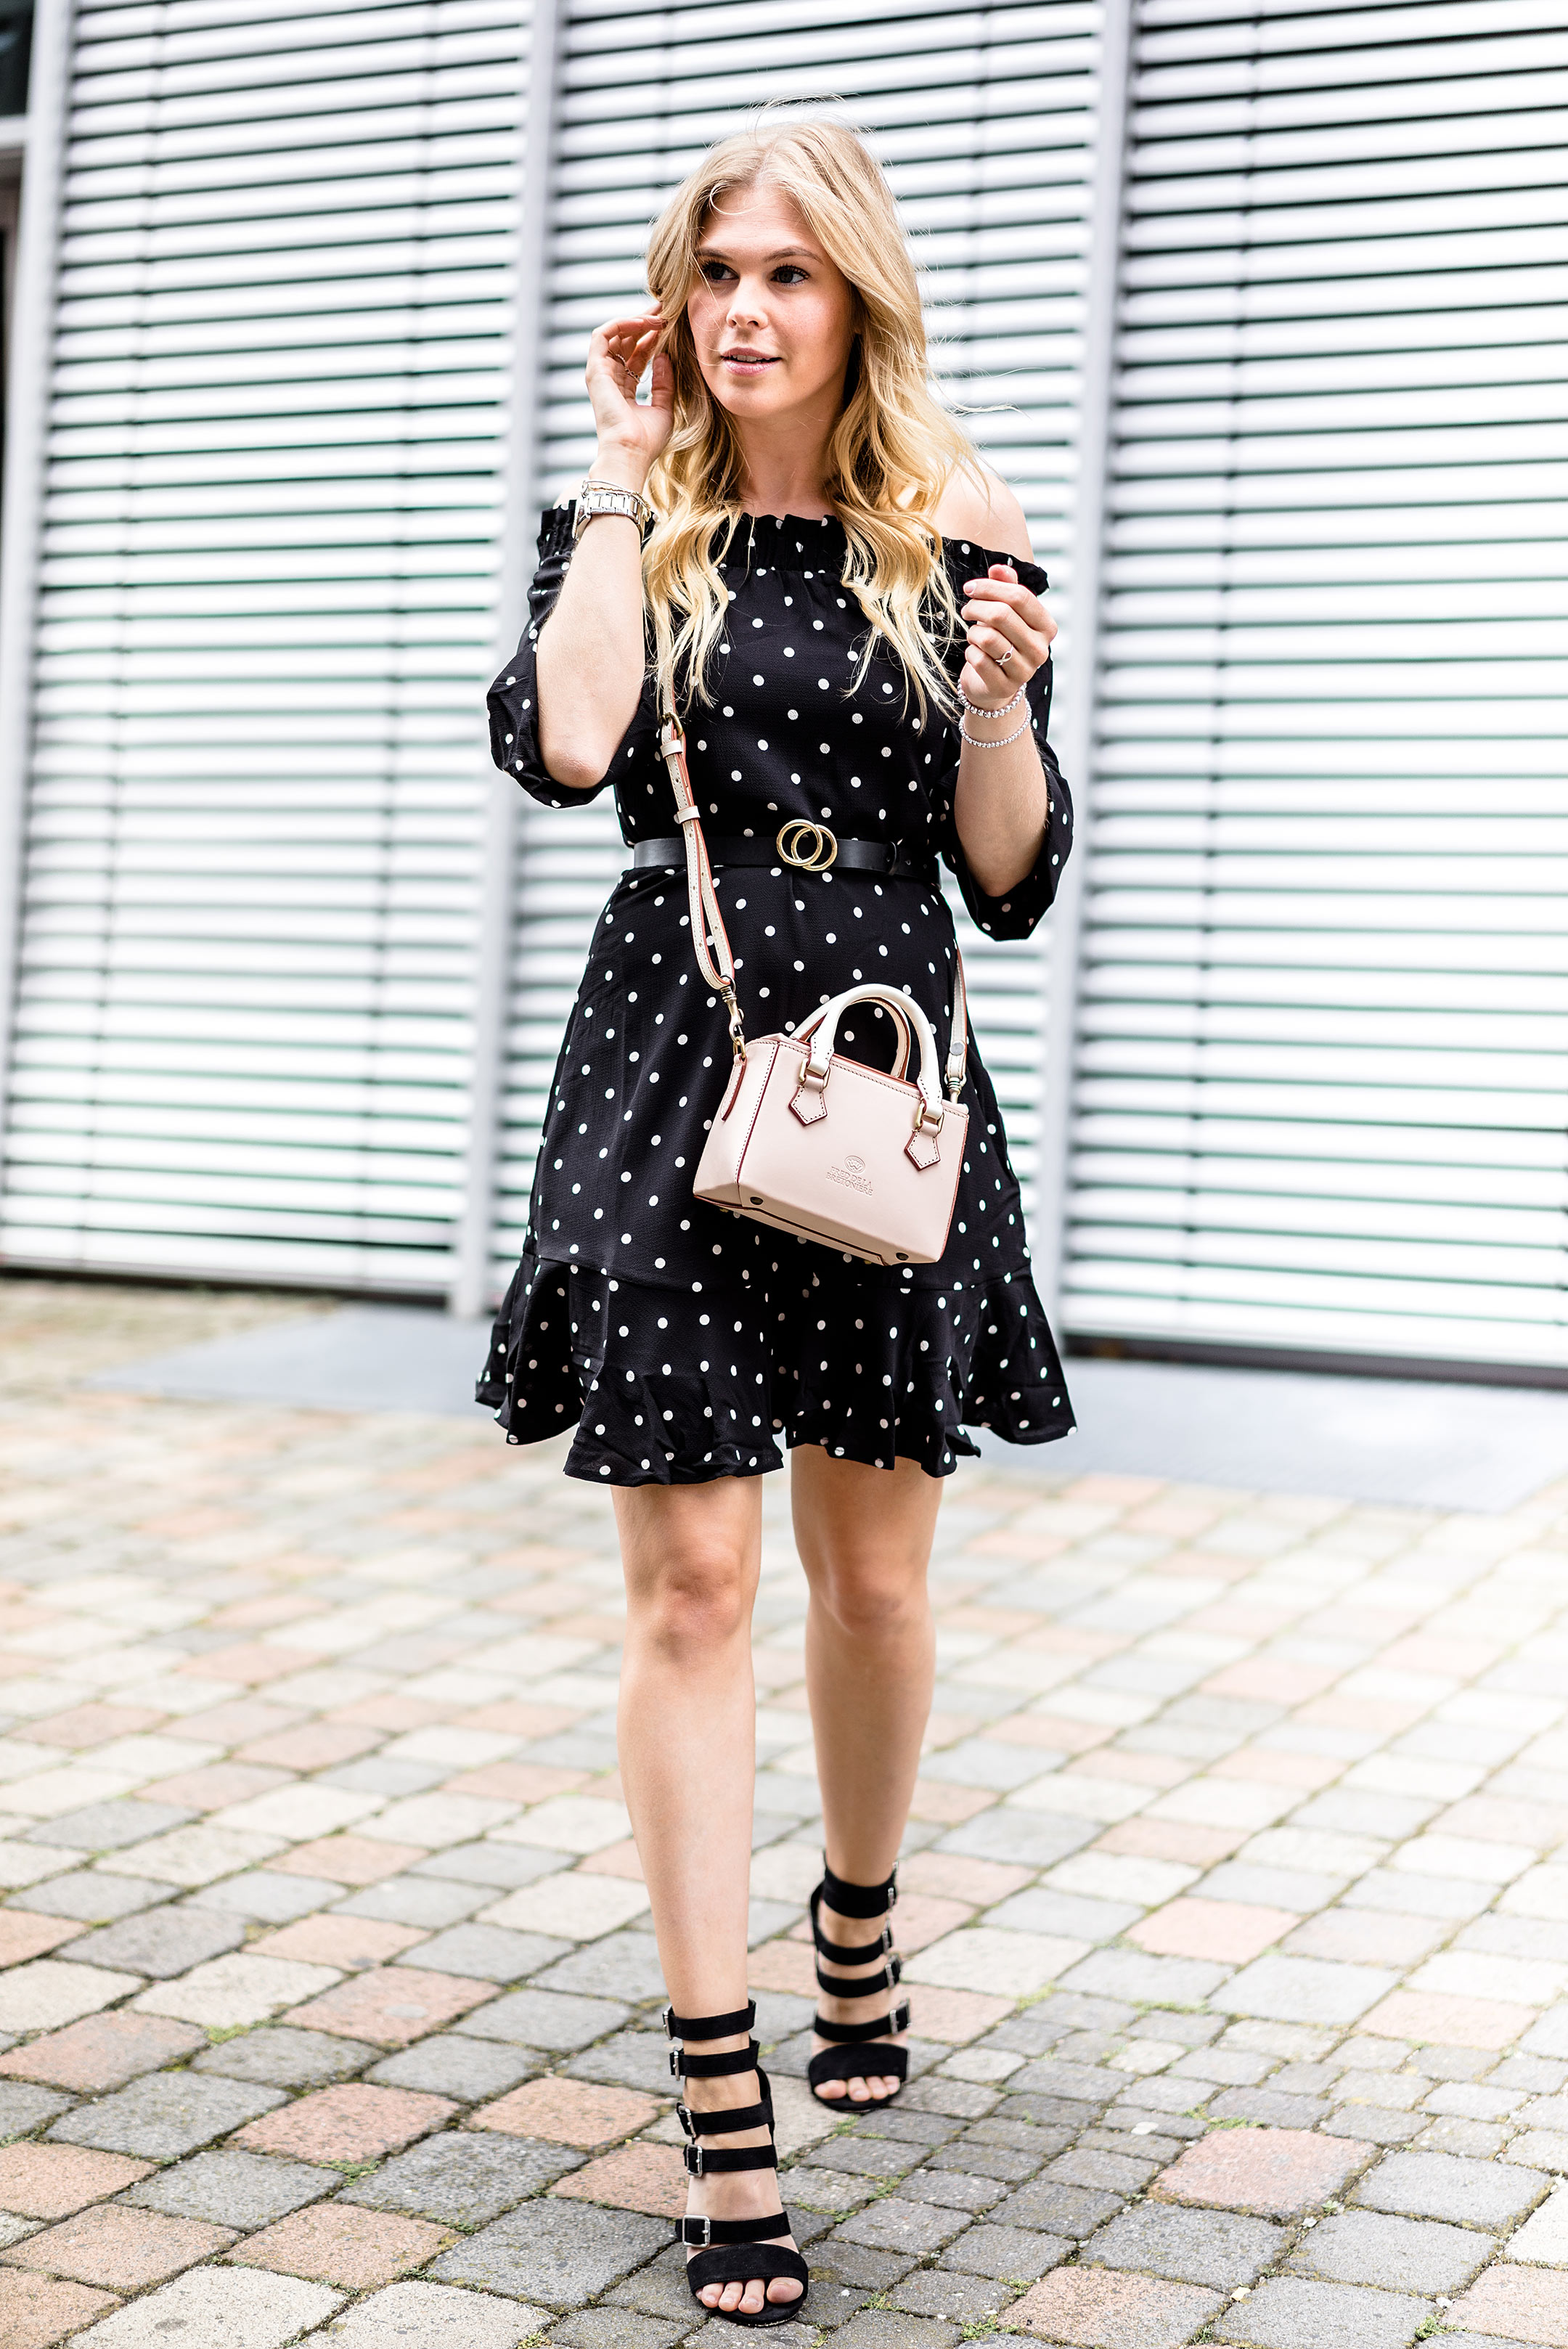 Outift Kleid Polka Dots Mini Bag Streetstyle Fashion Blogger Düsseldorf Sunnyinga